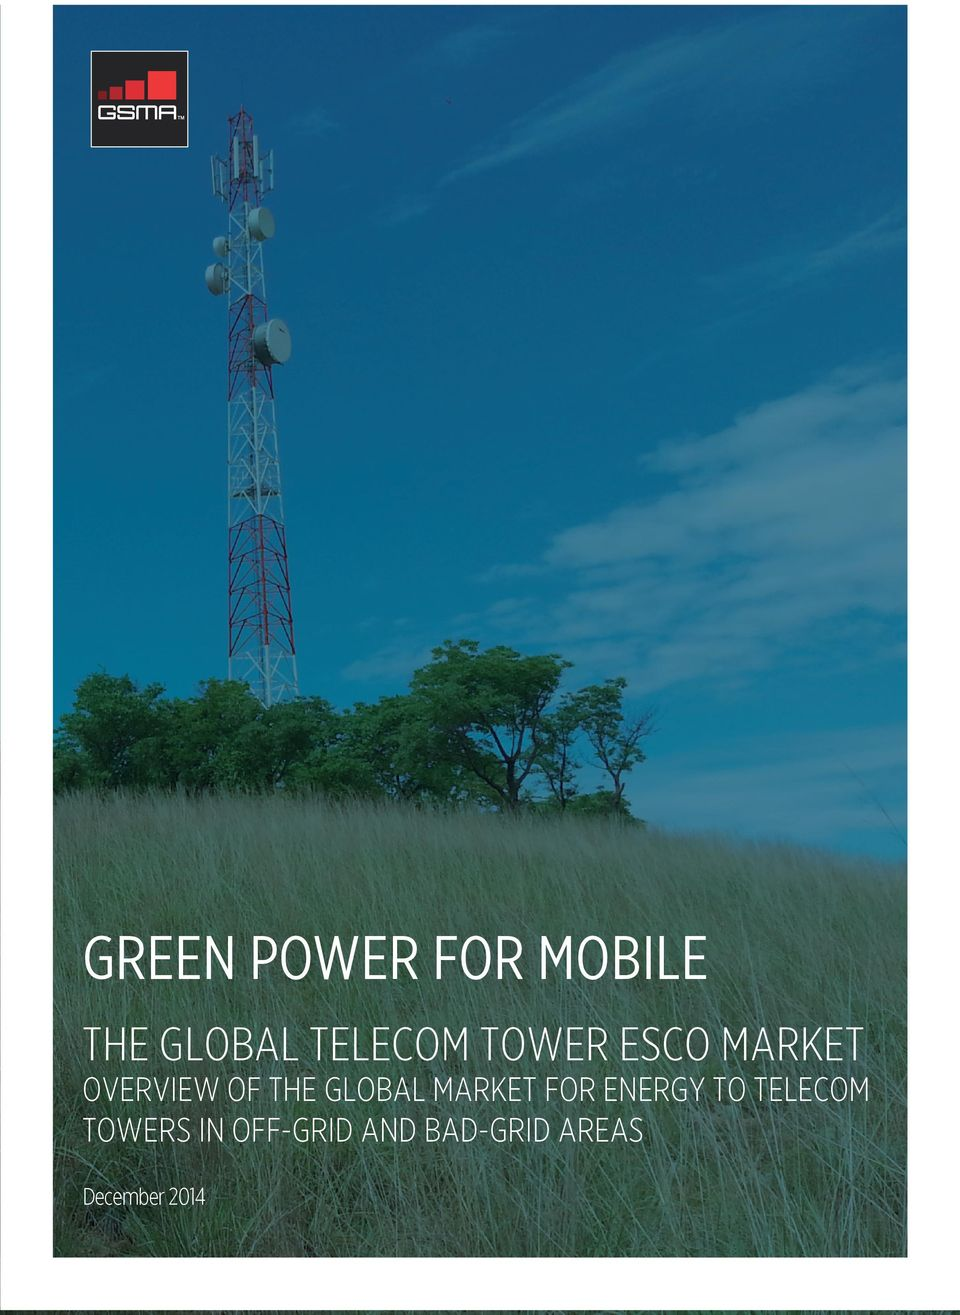 THE GLOBAL MARKET FOR ENERGY TO TELECOM